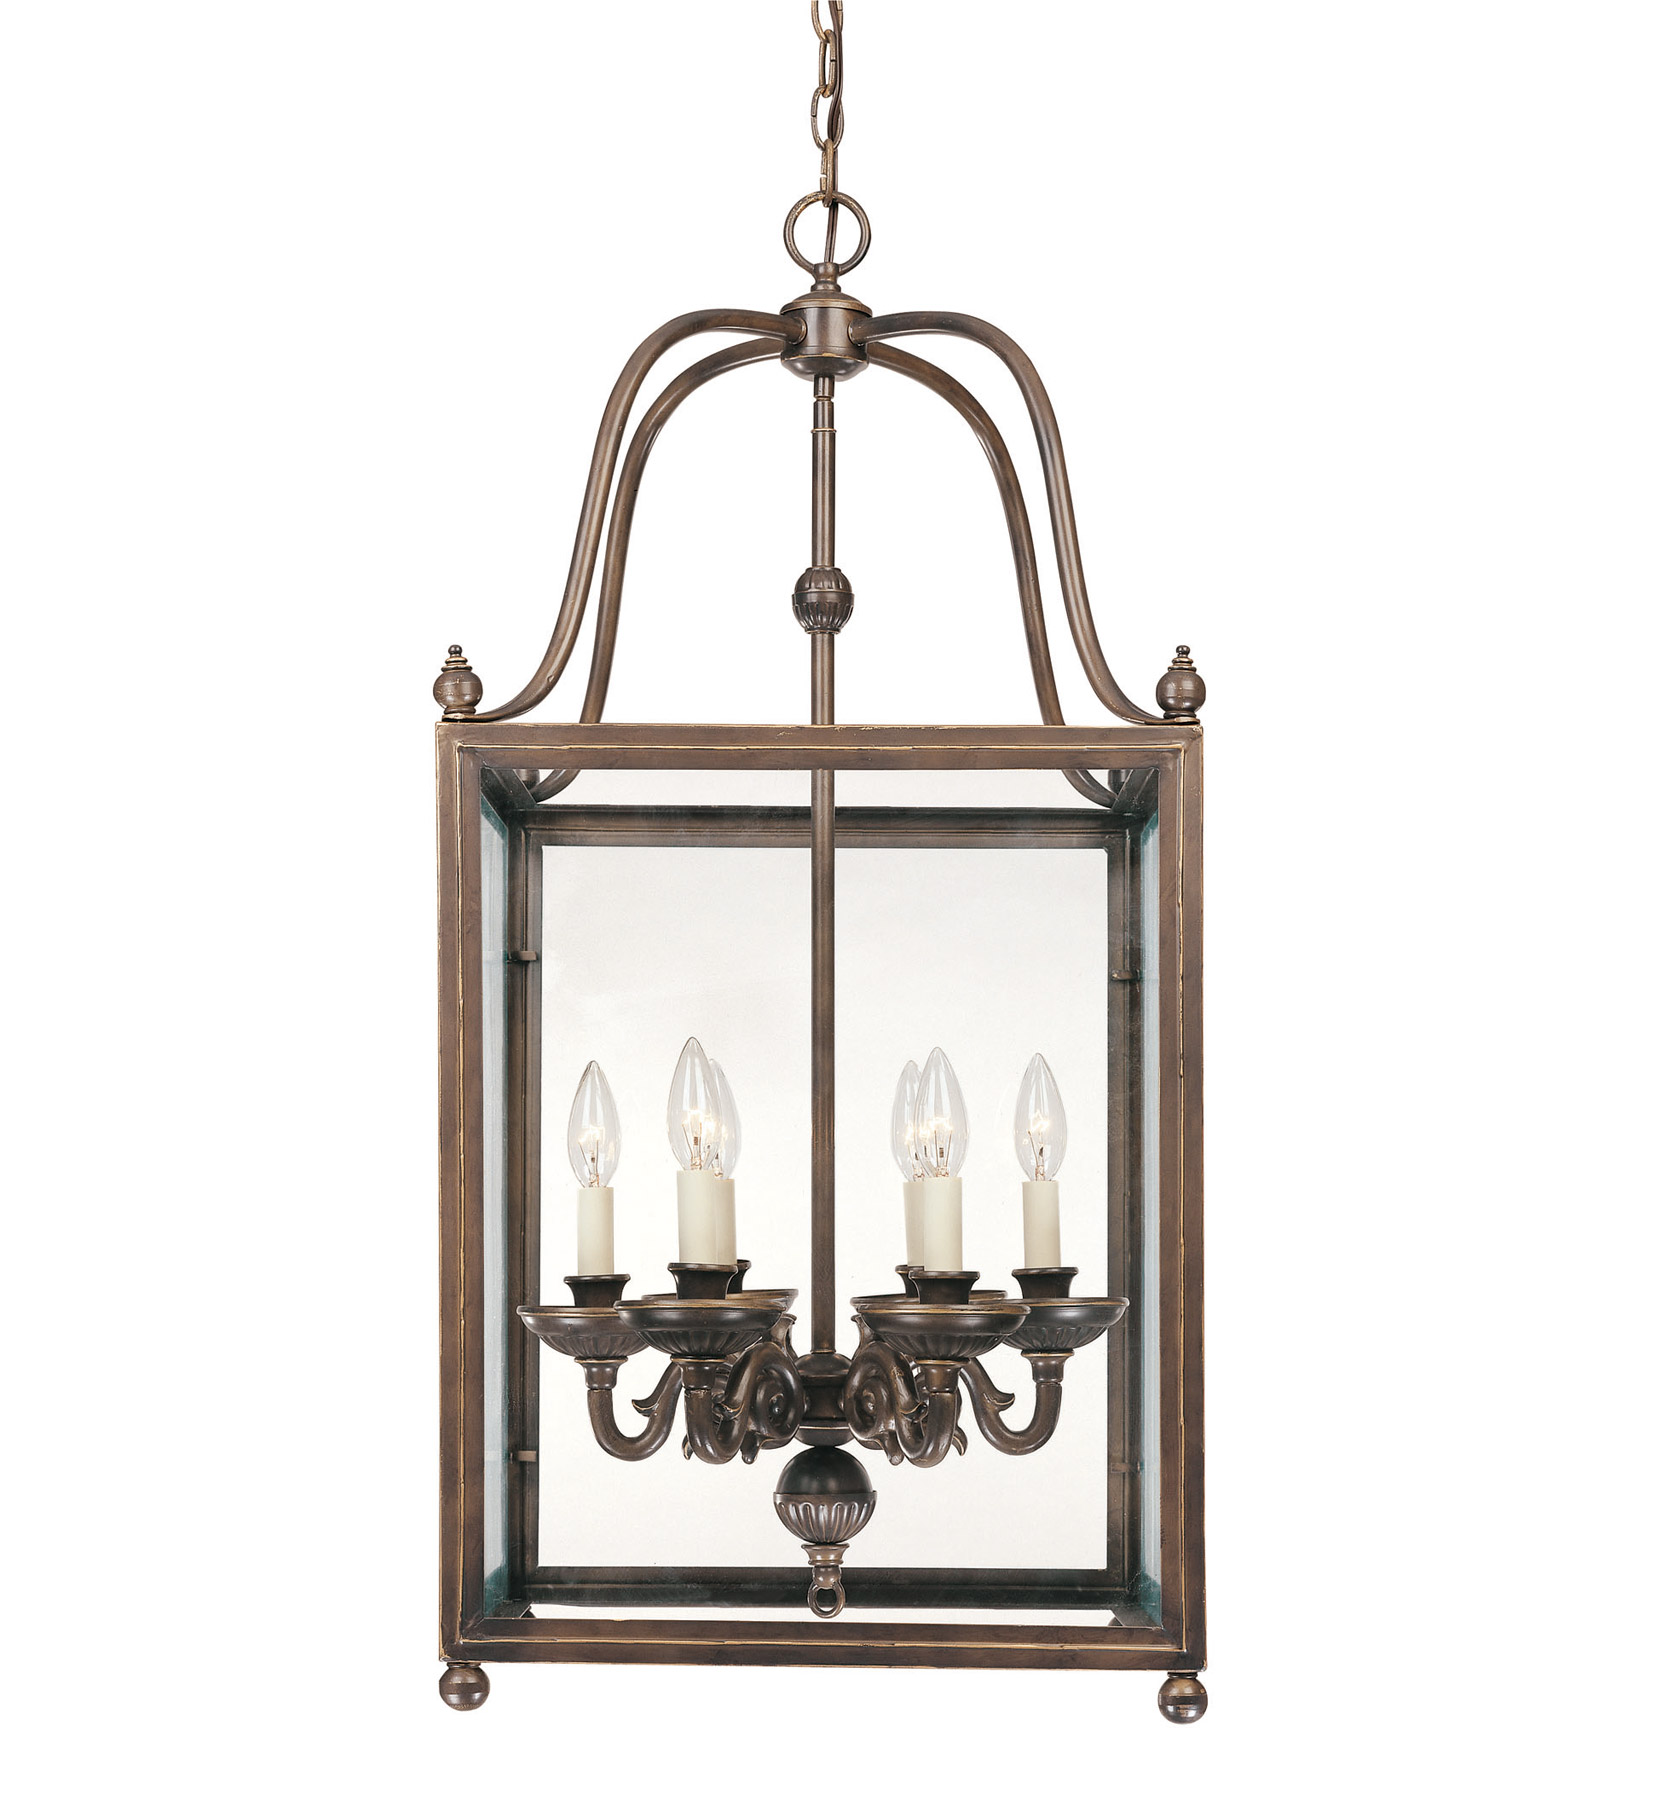 Foyer Lighting Lantern : Savoy house crabapple lantern